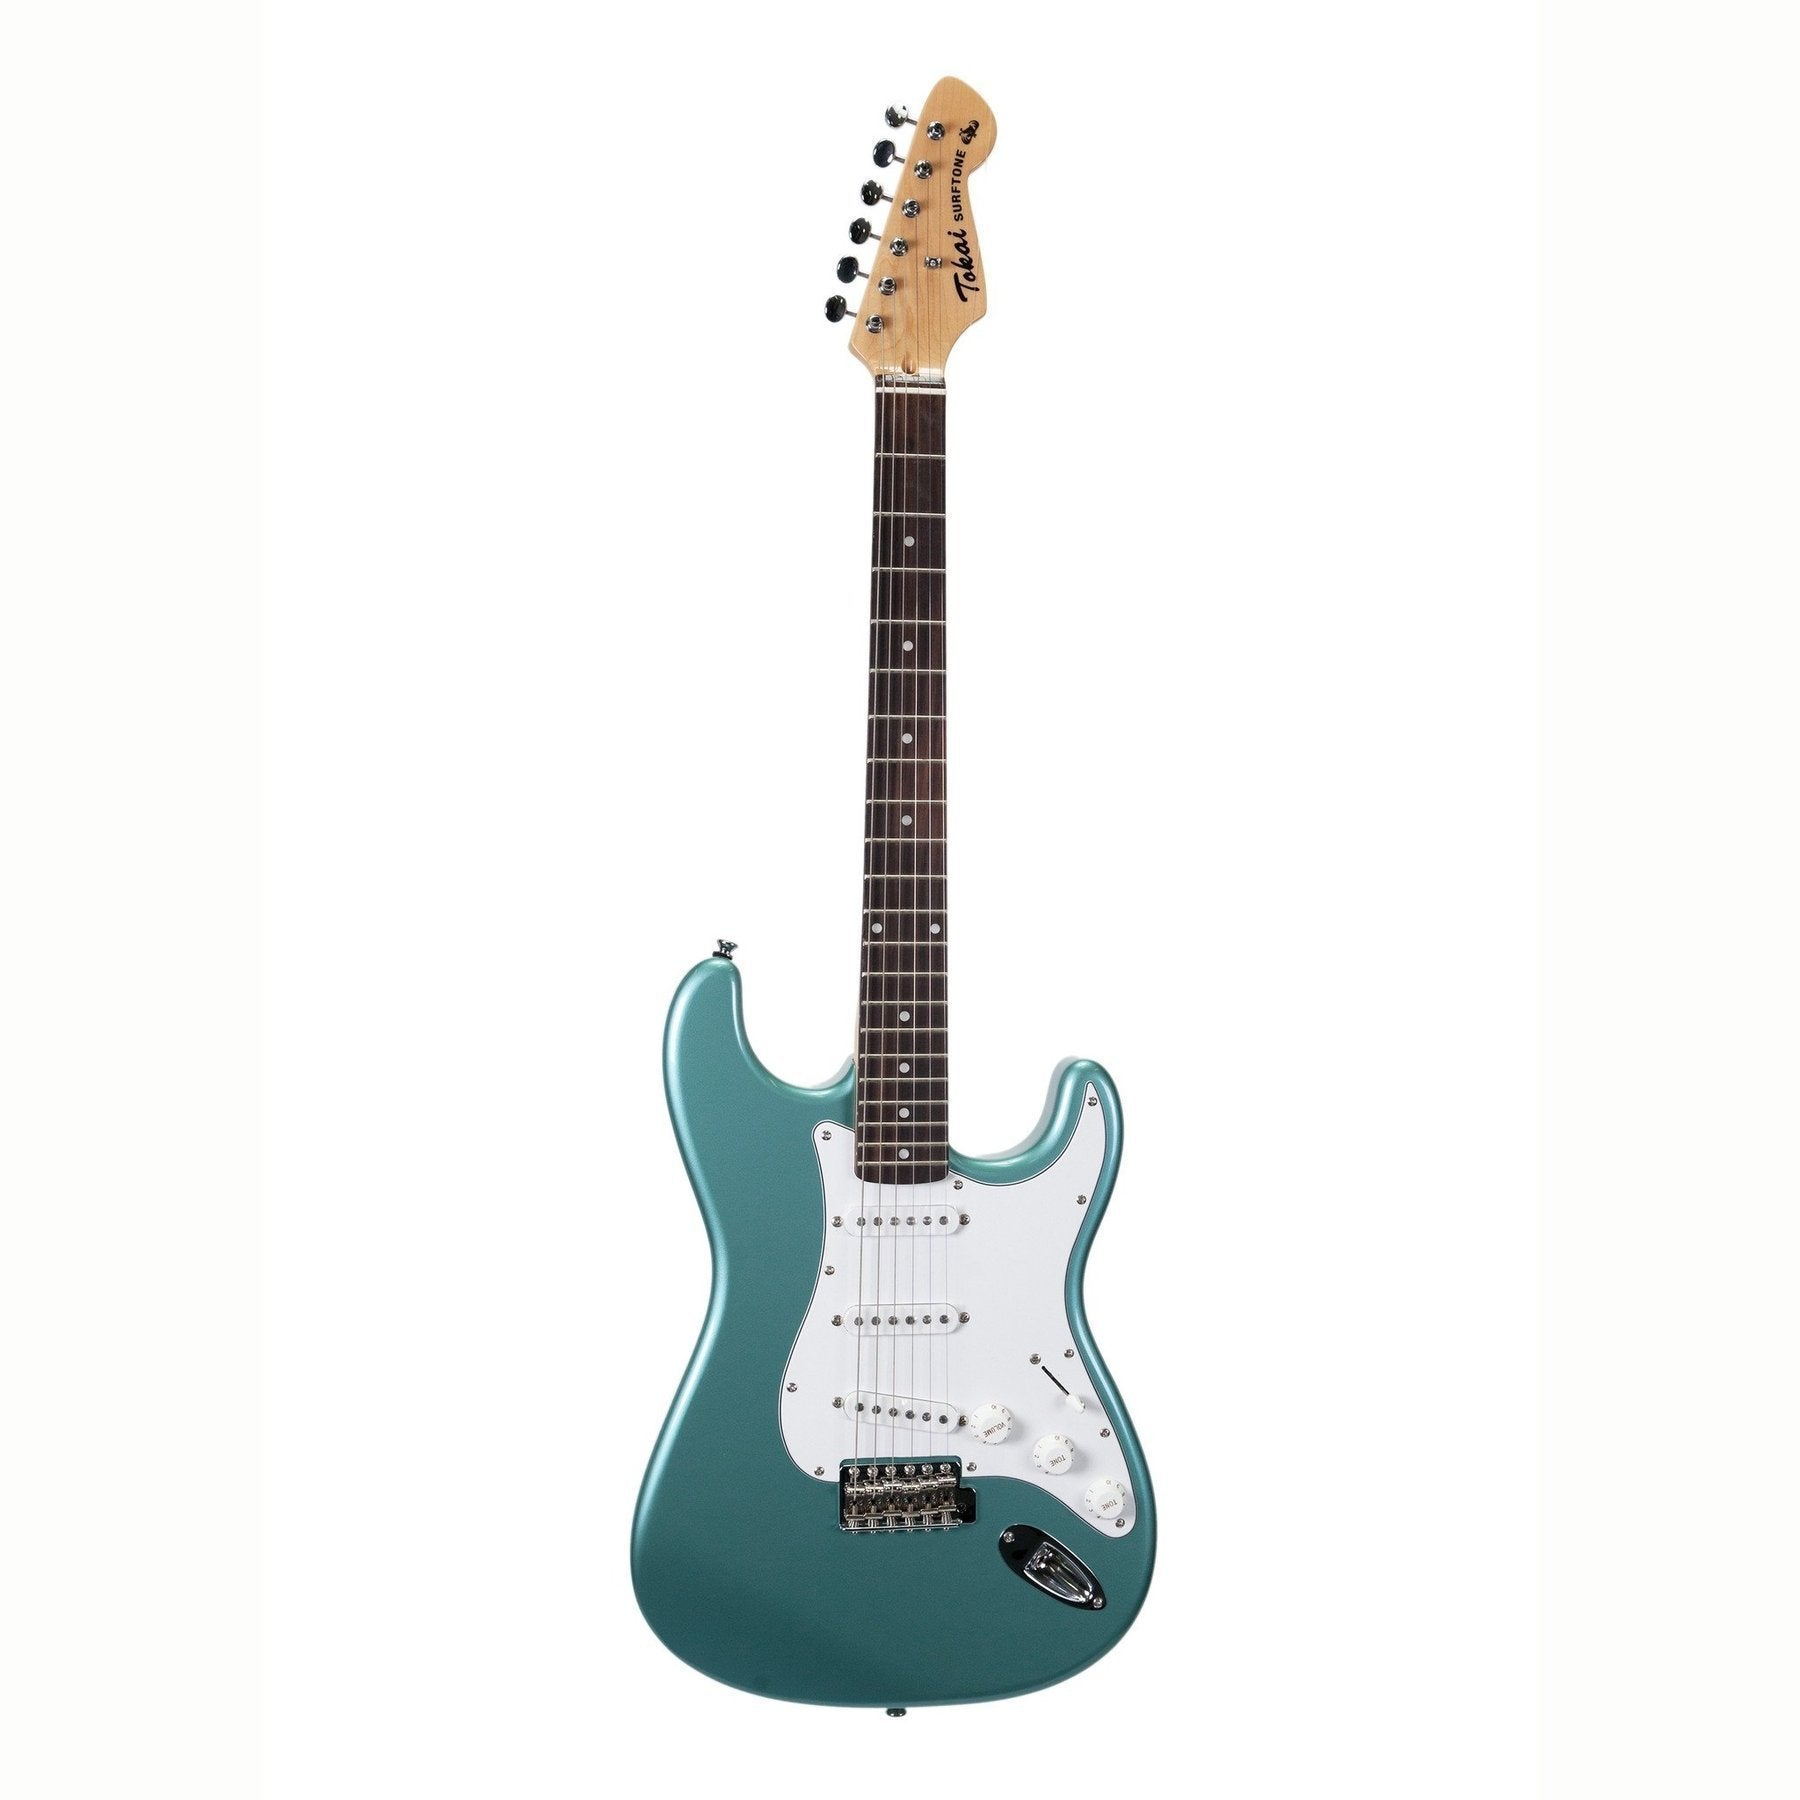 Tokai 'Surftone Series' AST-S38 ST-Style Electric Guitar (Ocean Turquoise Metallic)-AST-S38-OTM